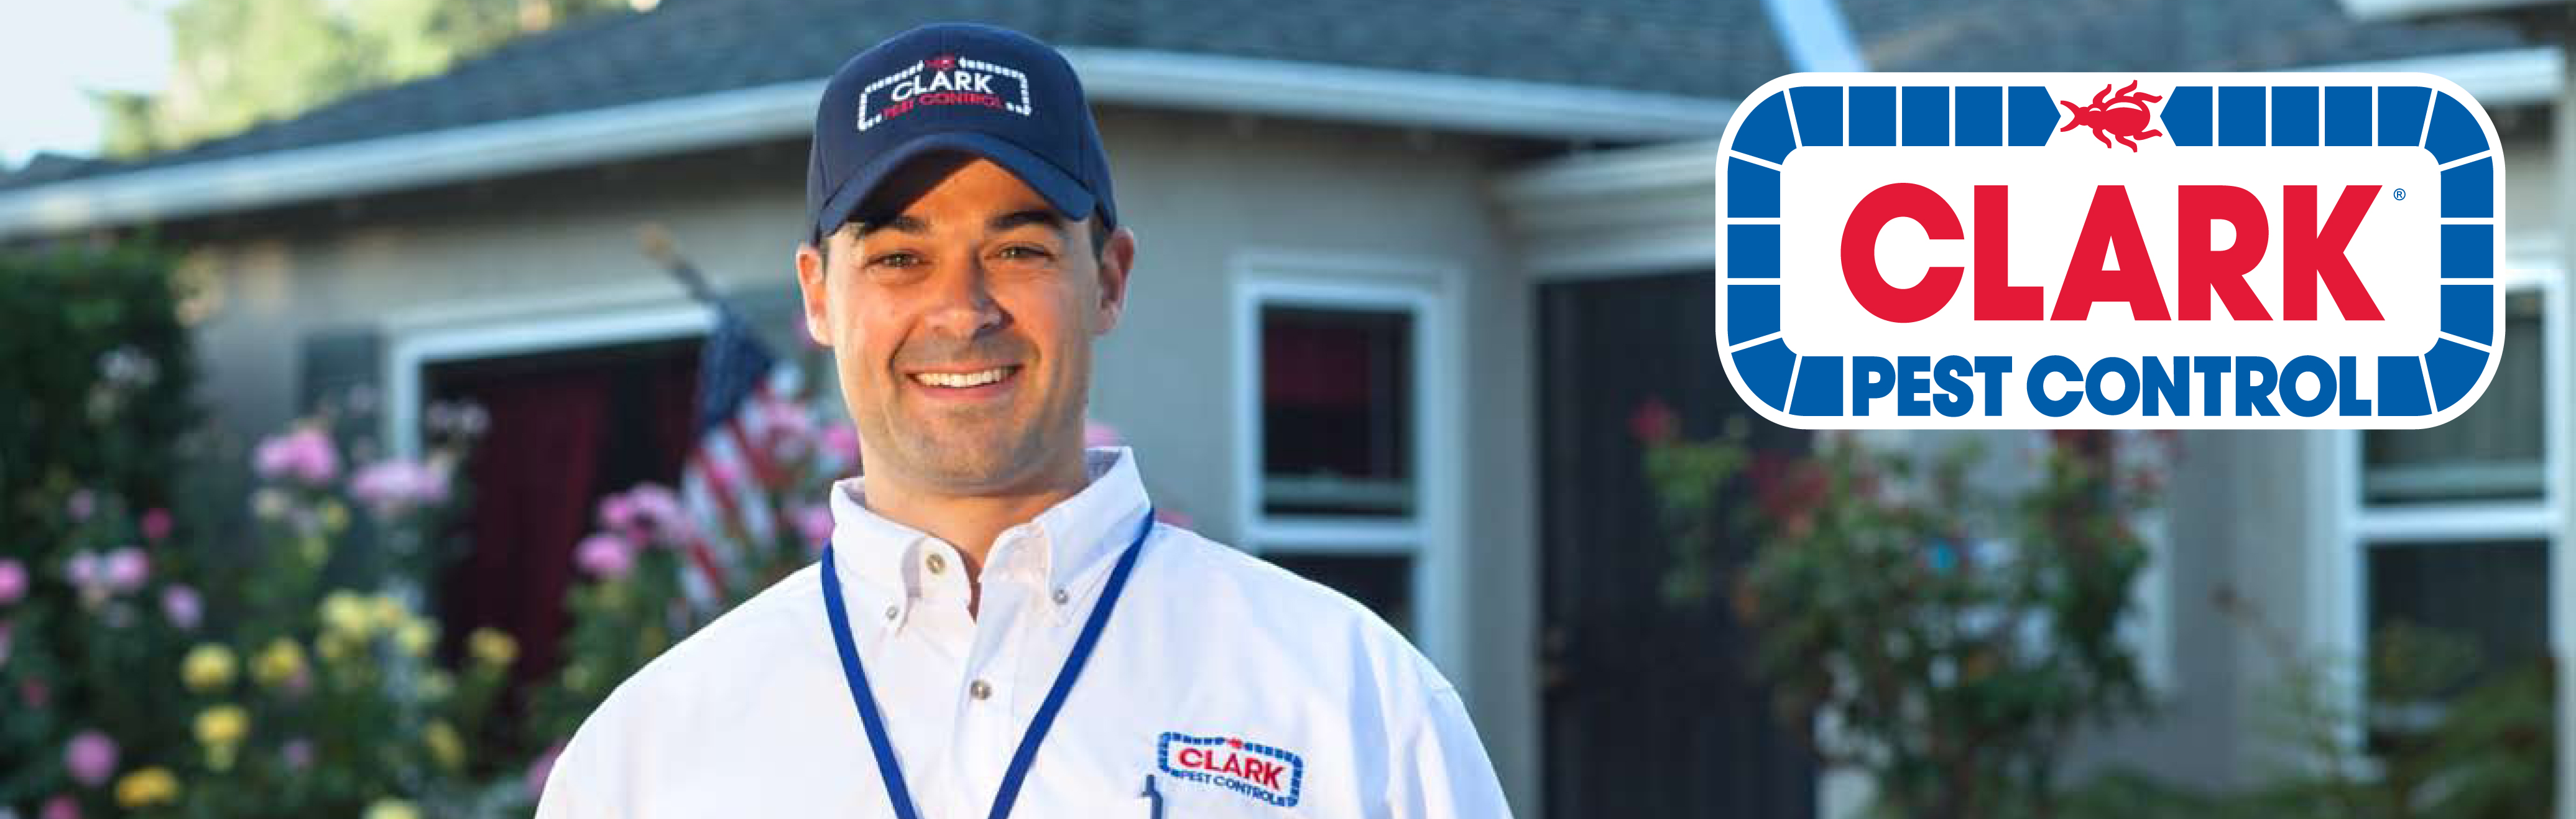 Clark Pest Control reviews | Landscaping at 6255 Ferris Square - San Diego CA